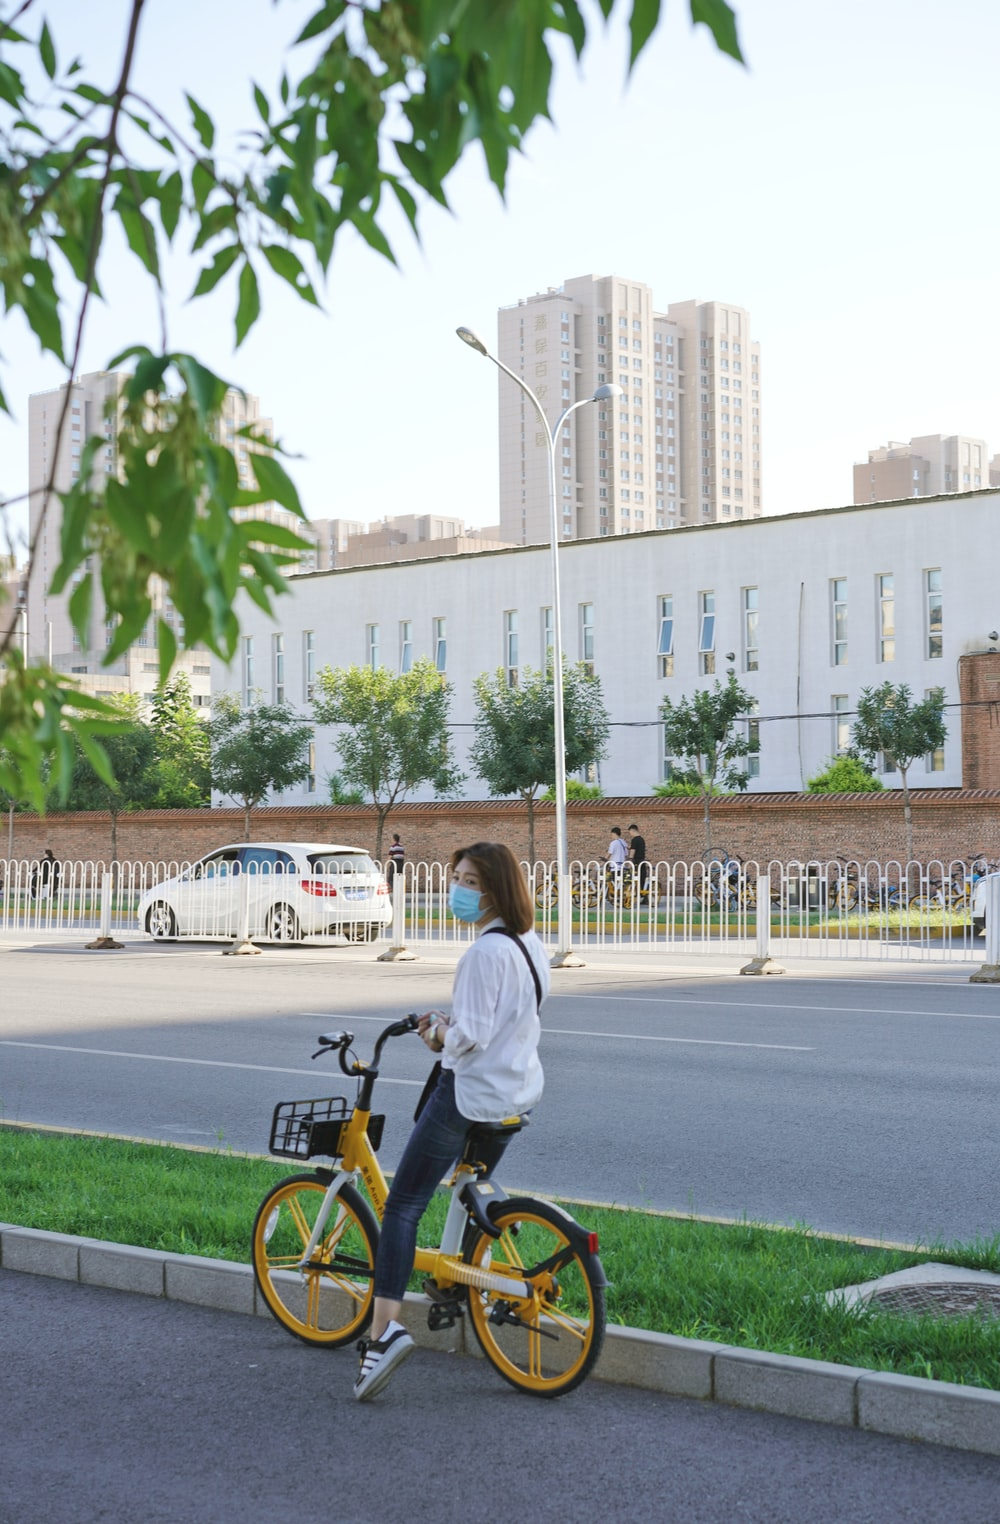 woman in white long sleeve shirt riding bicycle on road during daytime